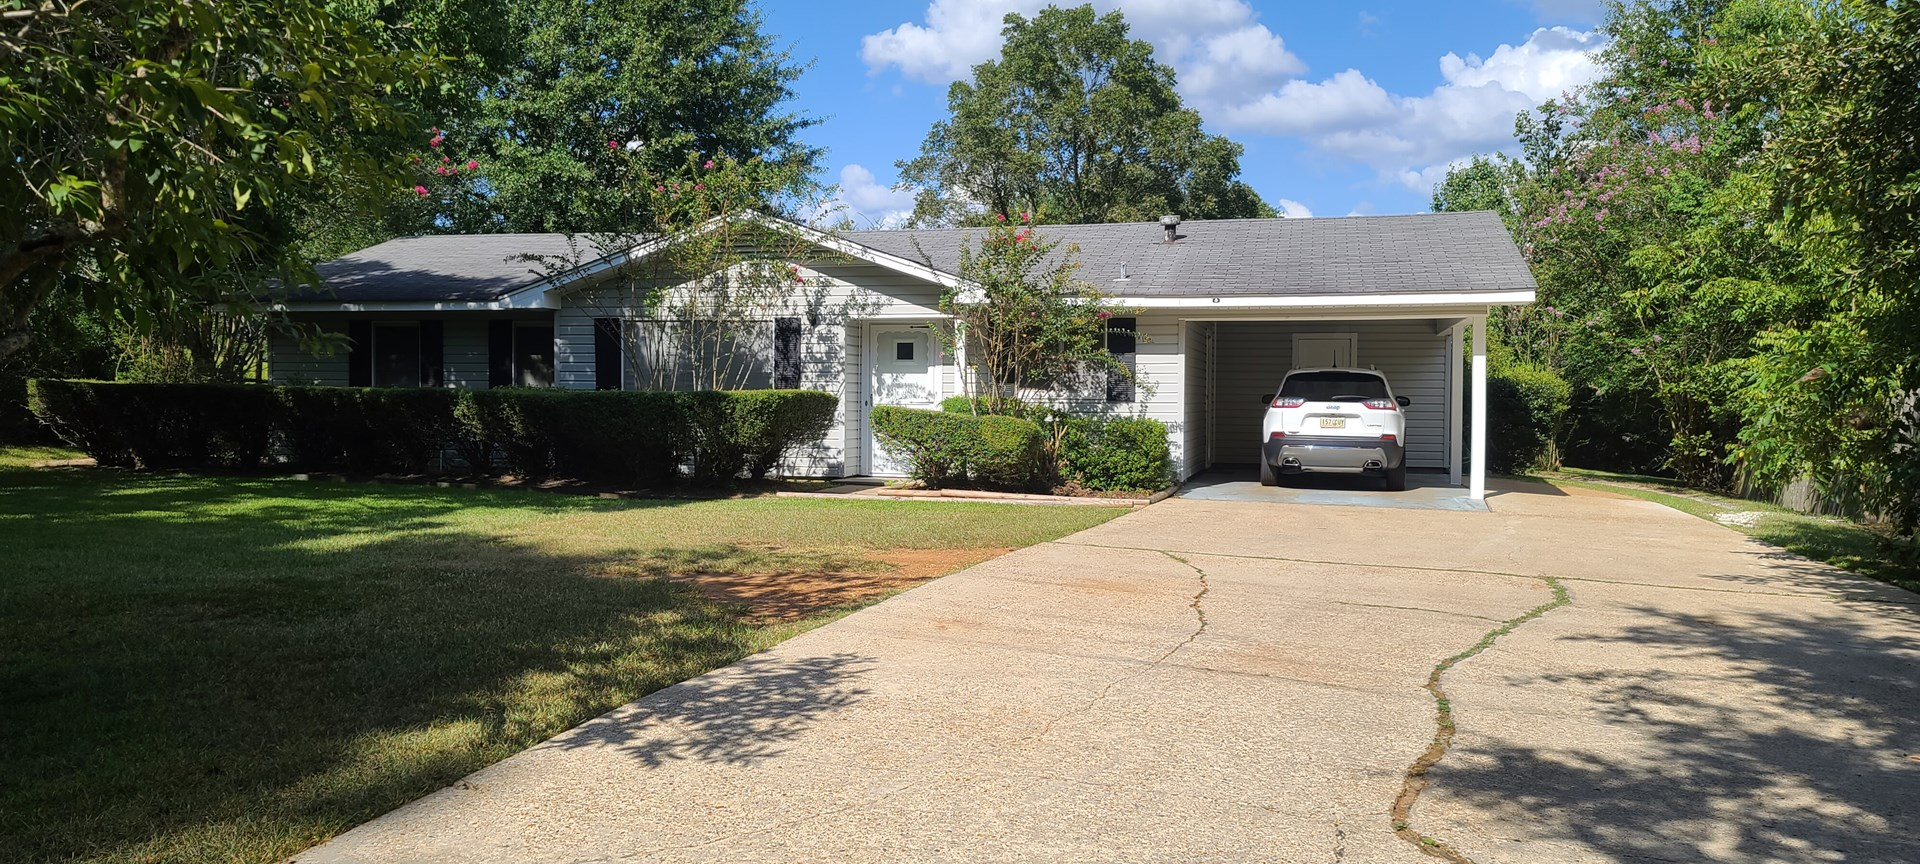 COUNTRY HOME IN UNION PARISH FOR SALE